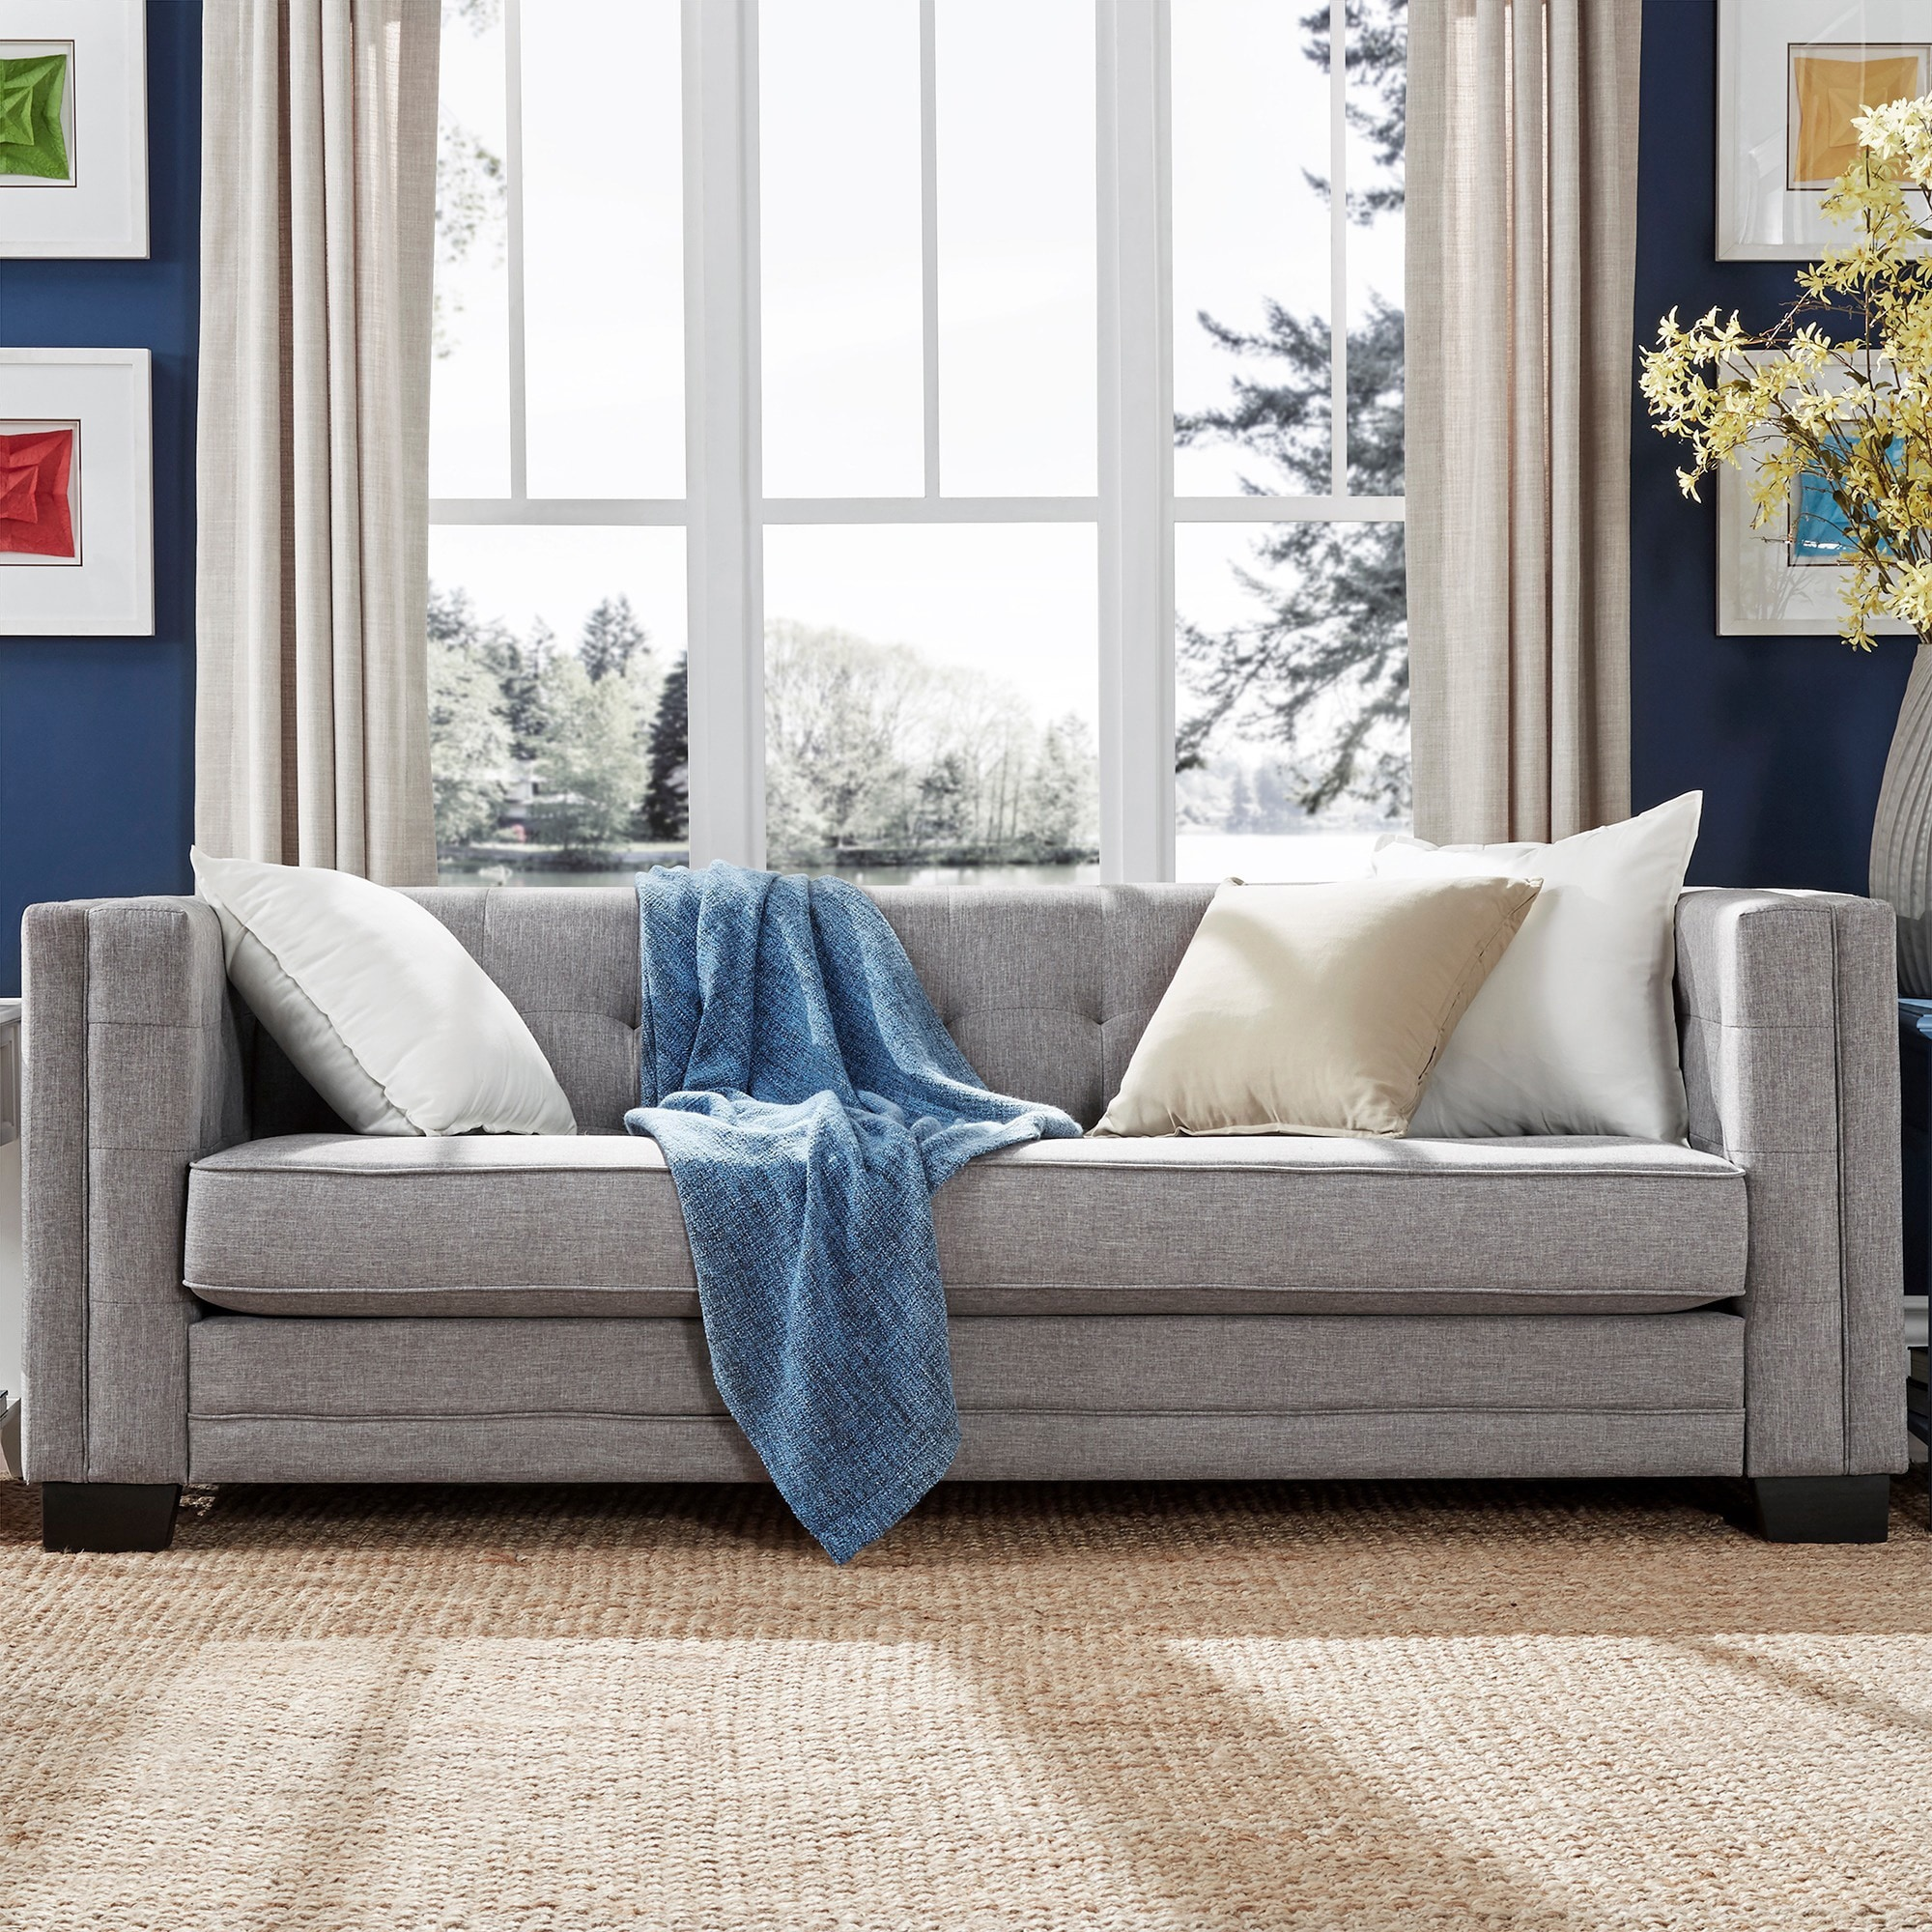 Hamilton Modern Linen Sofa with Button Tufting by iNSPIRE Q Bold - Free  Shipping Today - Overstock.com - 16588553